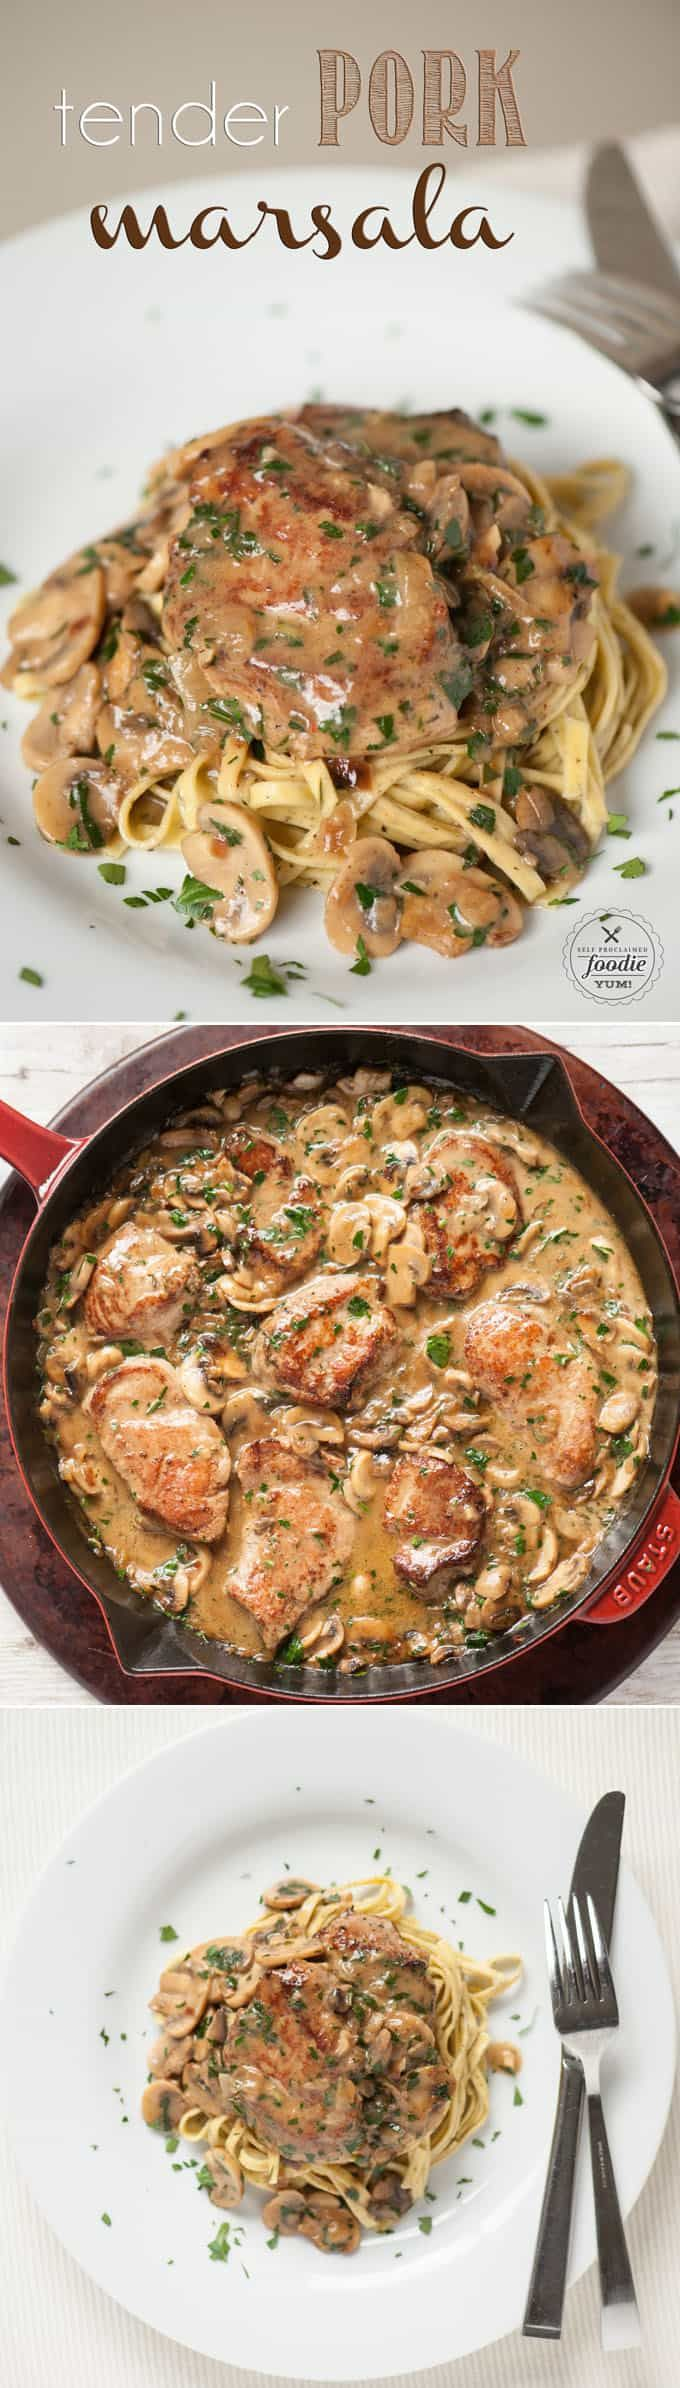 Ready in just 30 minutes Tender Pork Marsala made with marinated pork tenderloin smothered in a mushroom wine sauce is perfect for any night of the week